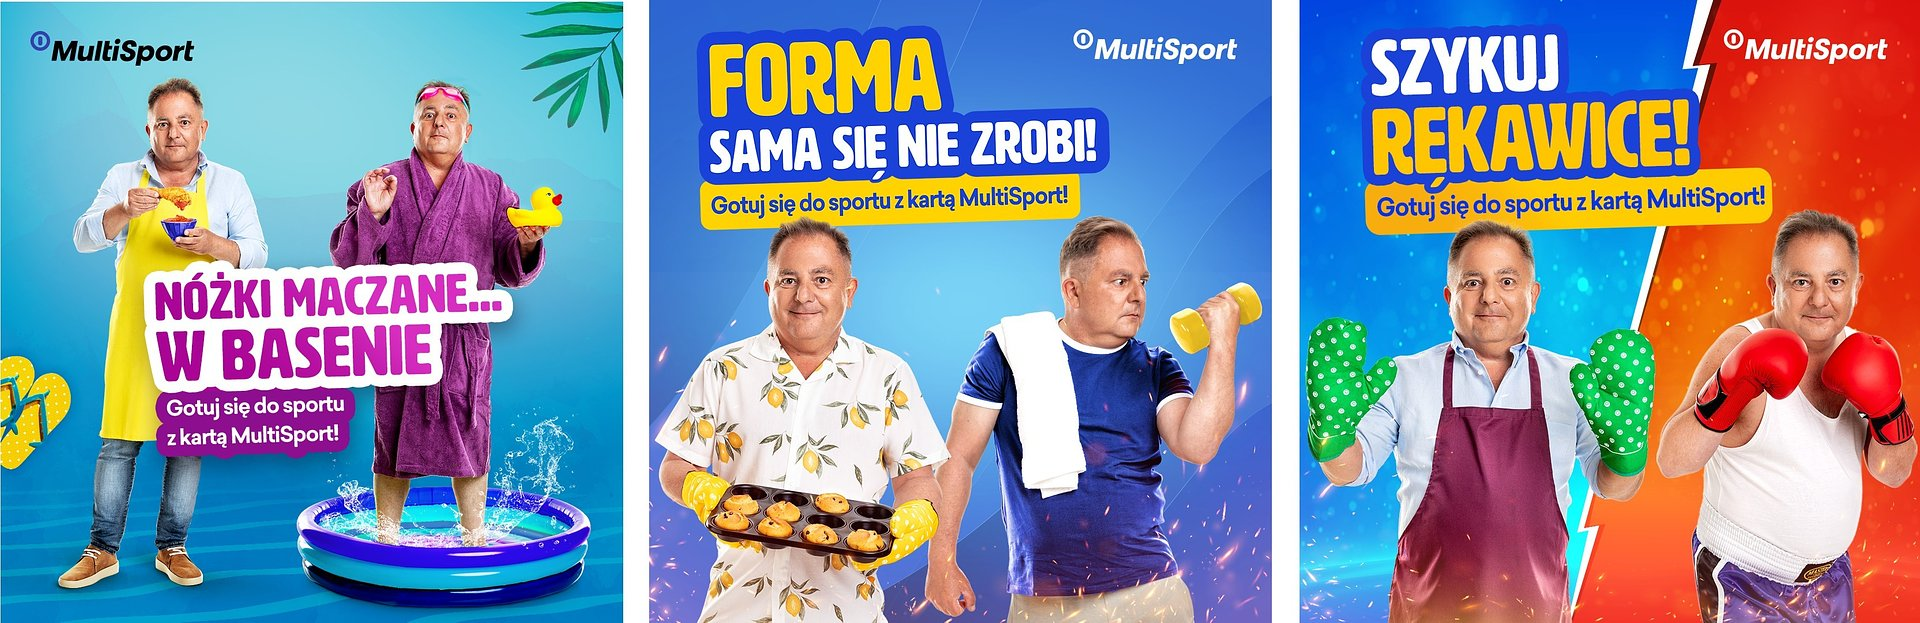 MultiSport contrastive campaign with Robert Makłowicz